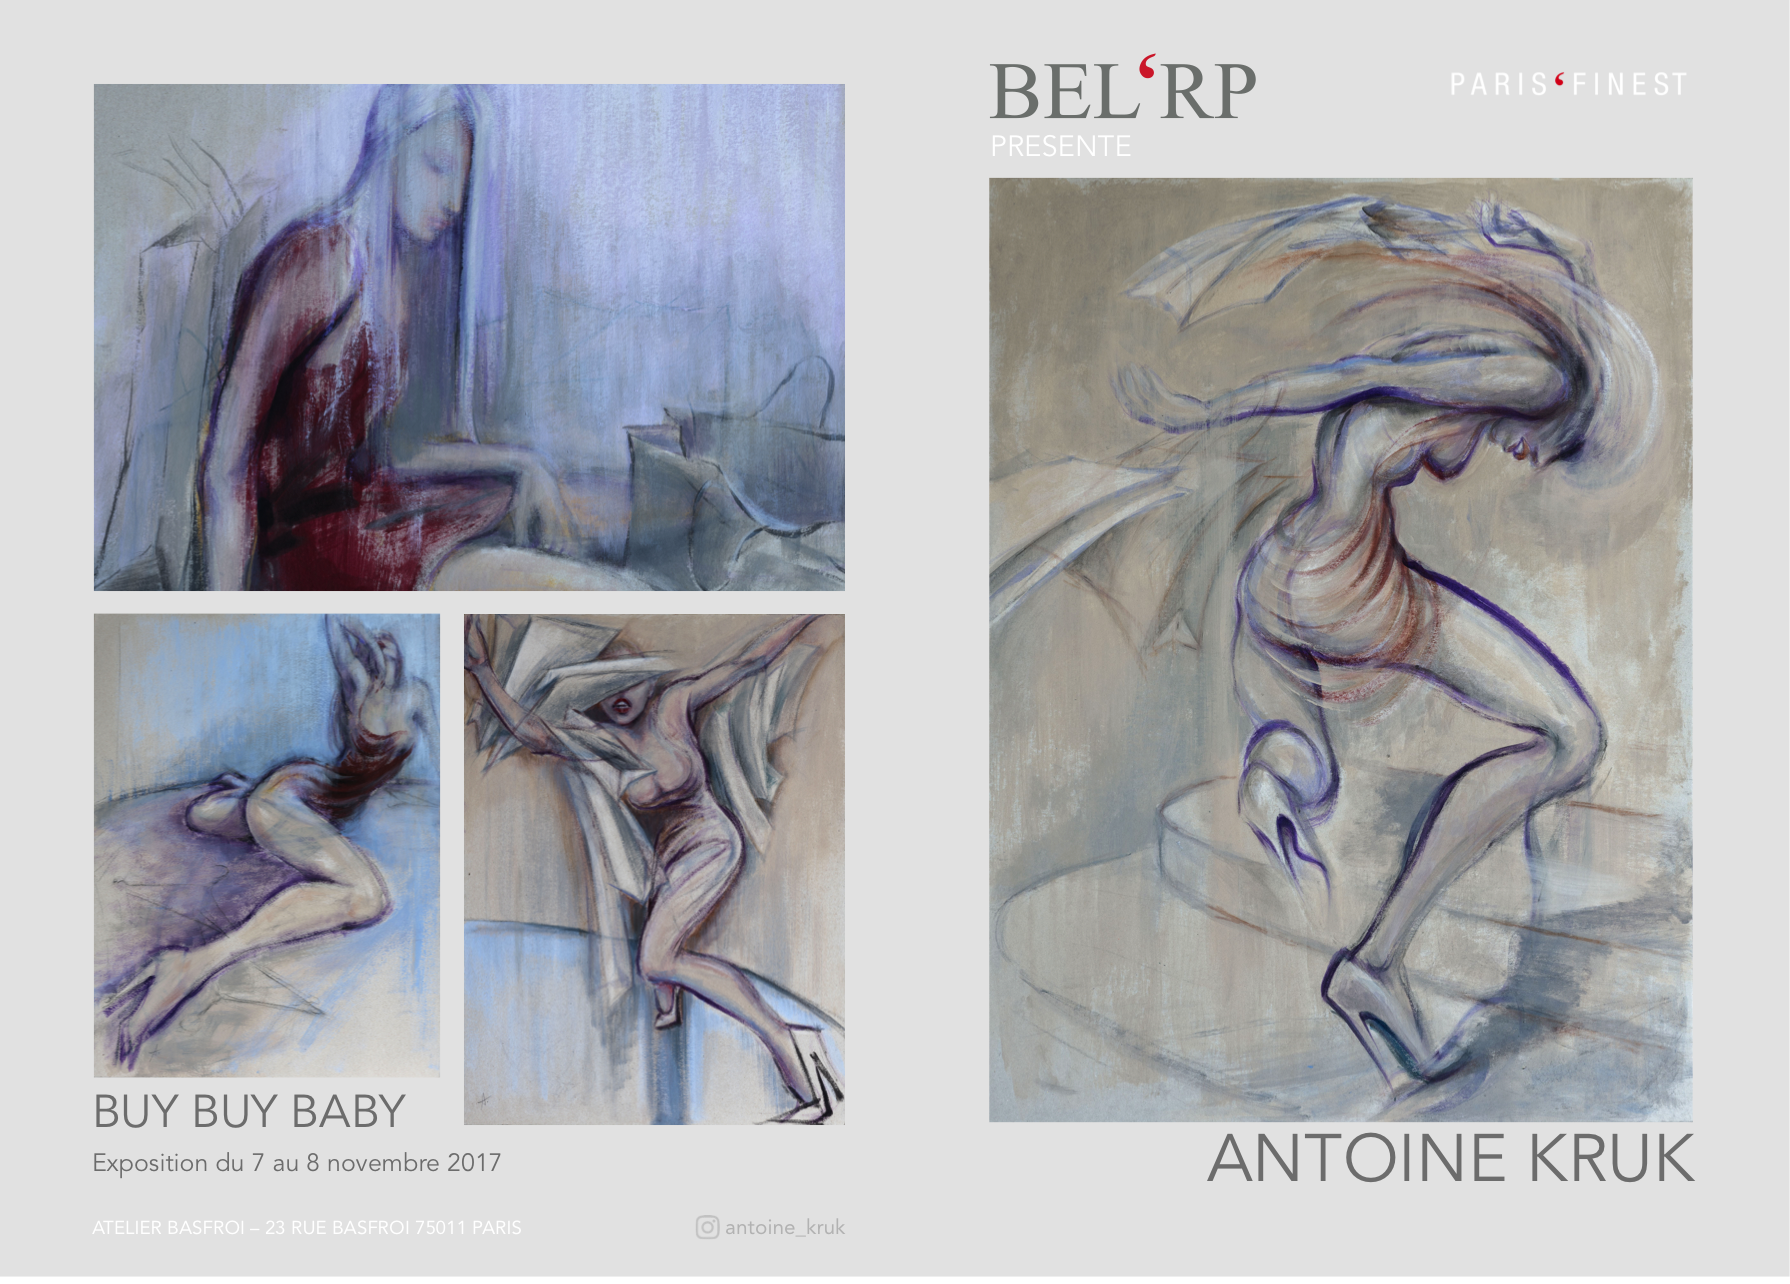 Exhibition organized by BEL'RP Paris